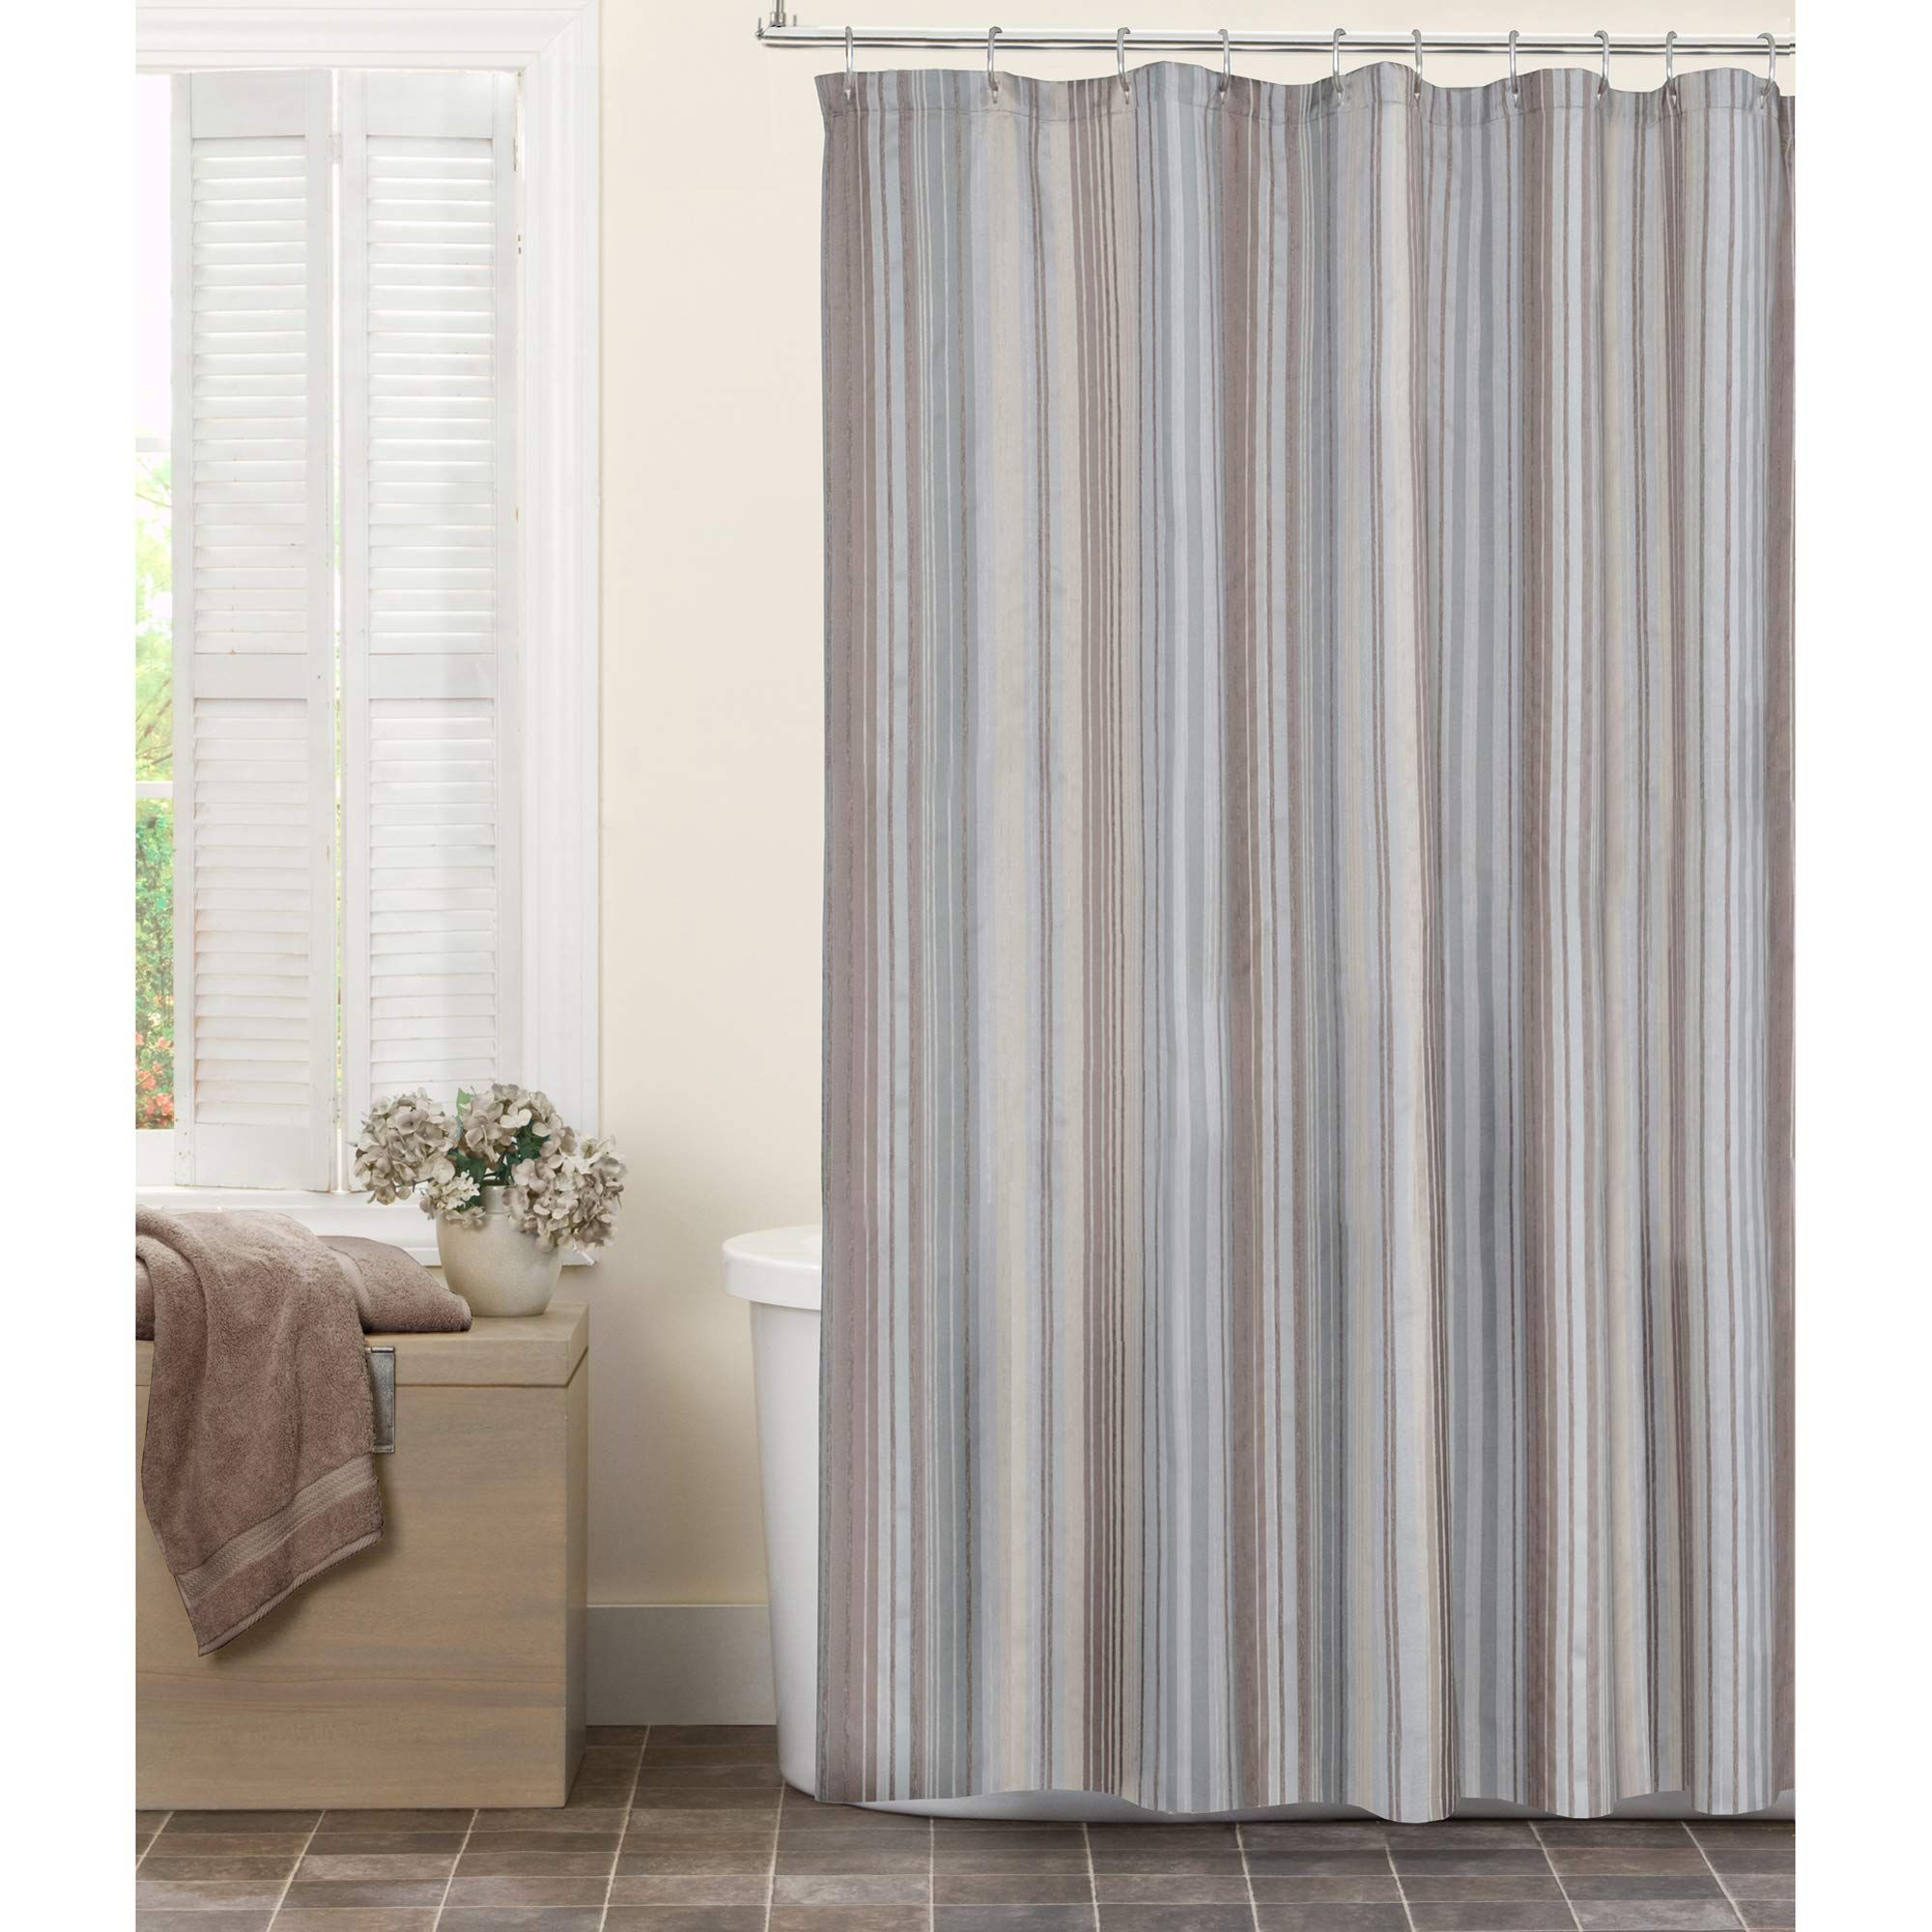 Maytex Jodie Chenille Striped Fabric Shower Curtain Taupe Domy